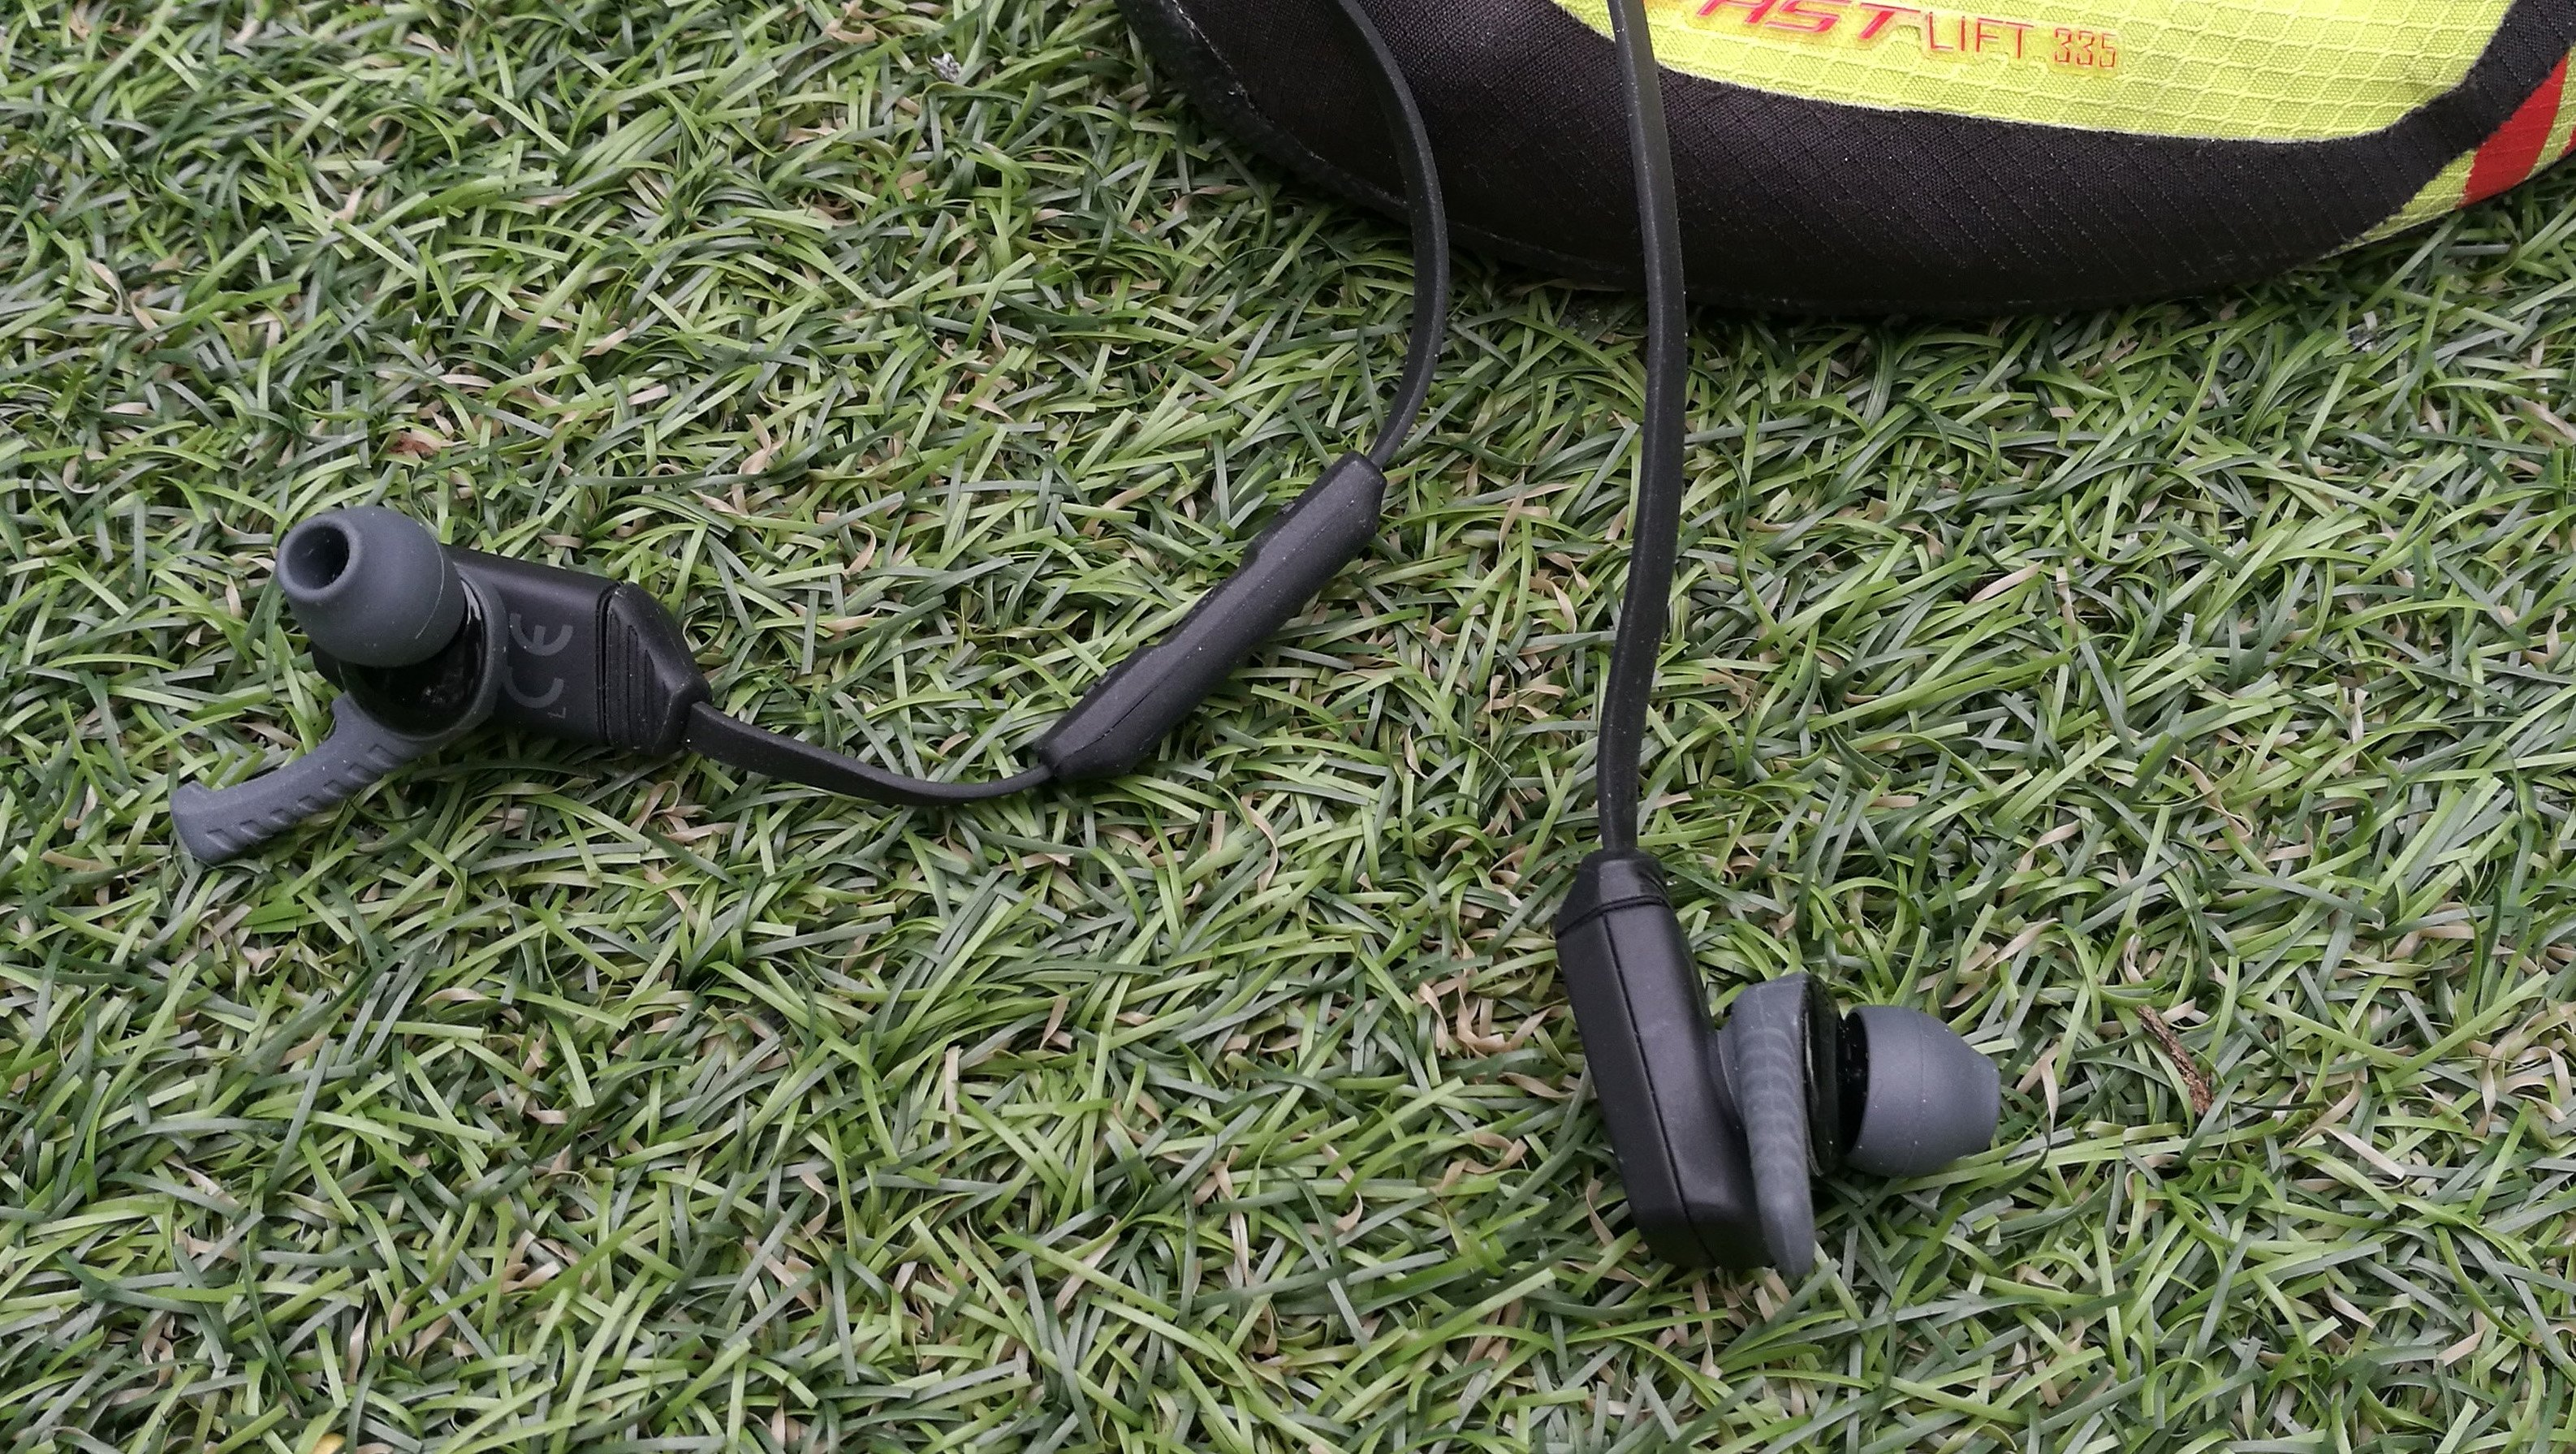 7654b93be21 Skullcandy XTfree review - superb fit but spotty wireless | Expert ...